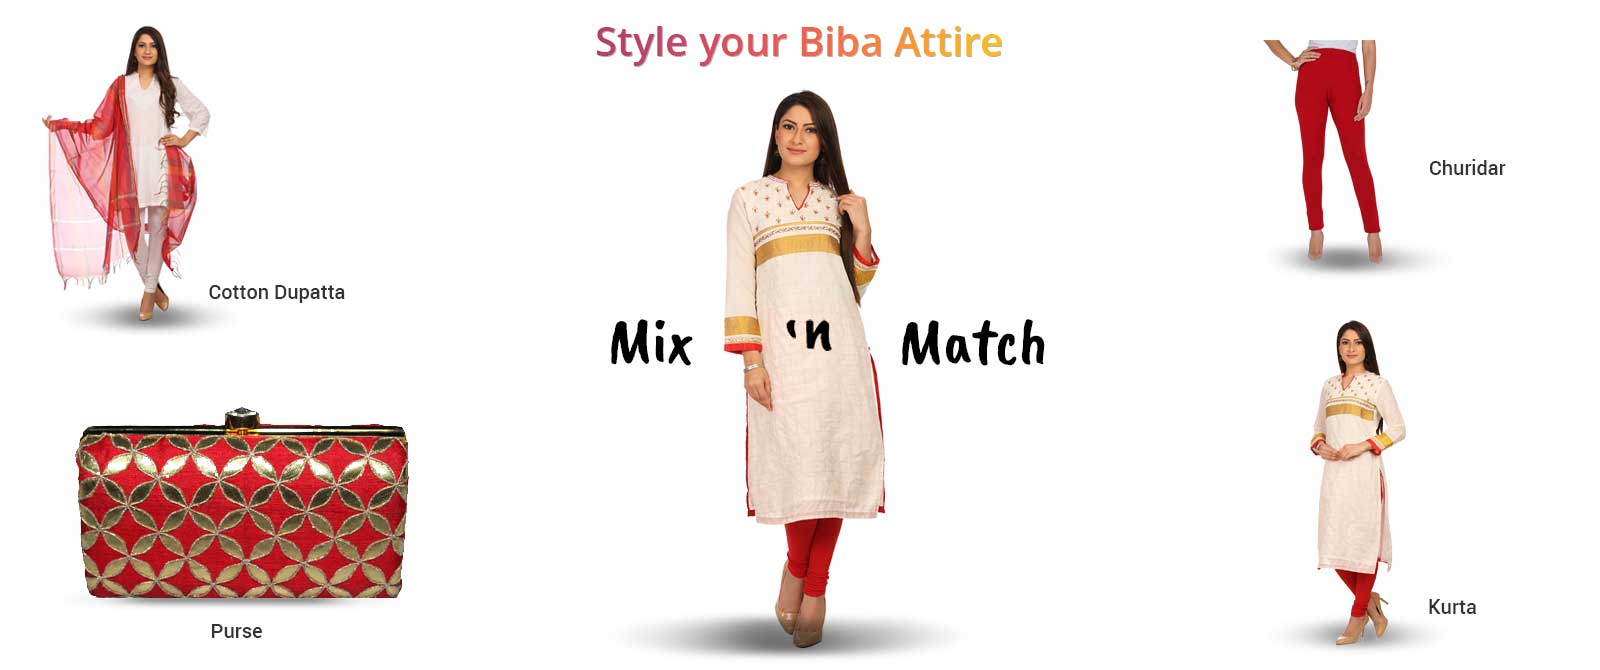 Style your Biba Attire with Mix n Match Style use Coupons Promo Codes Deals and Cashback offers